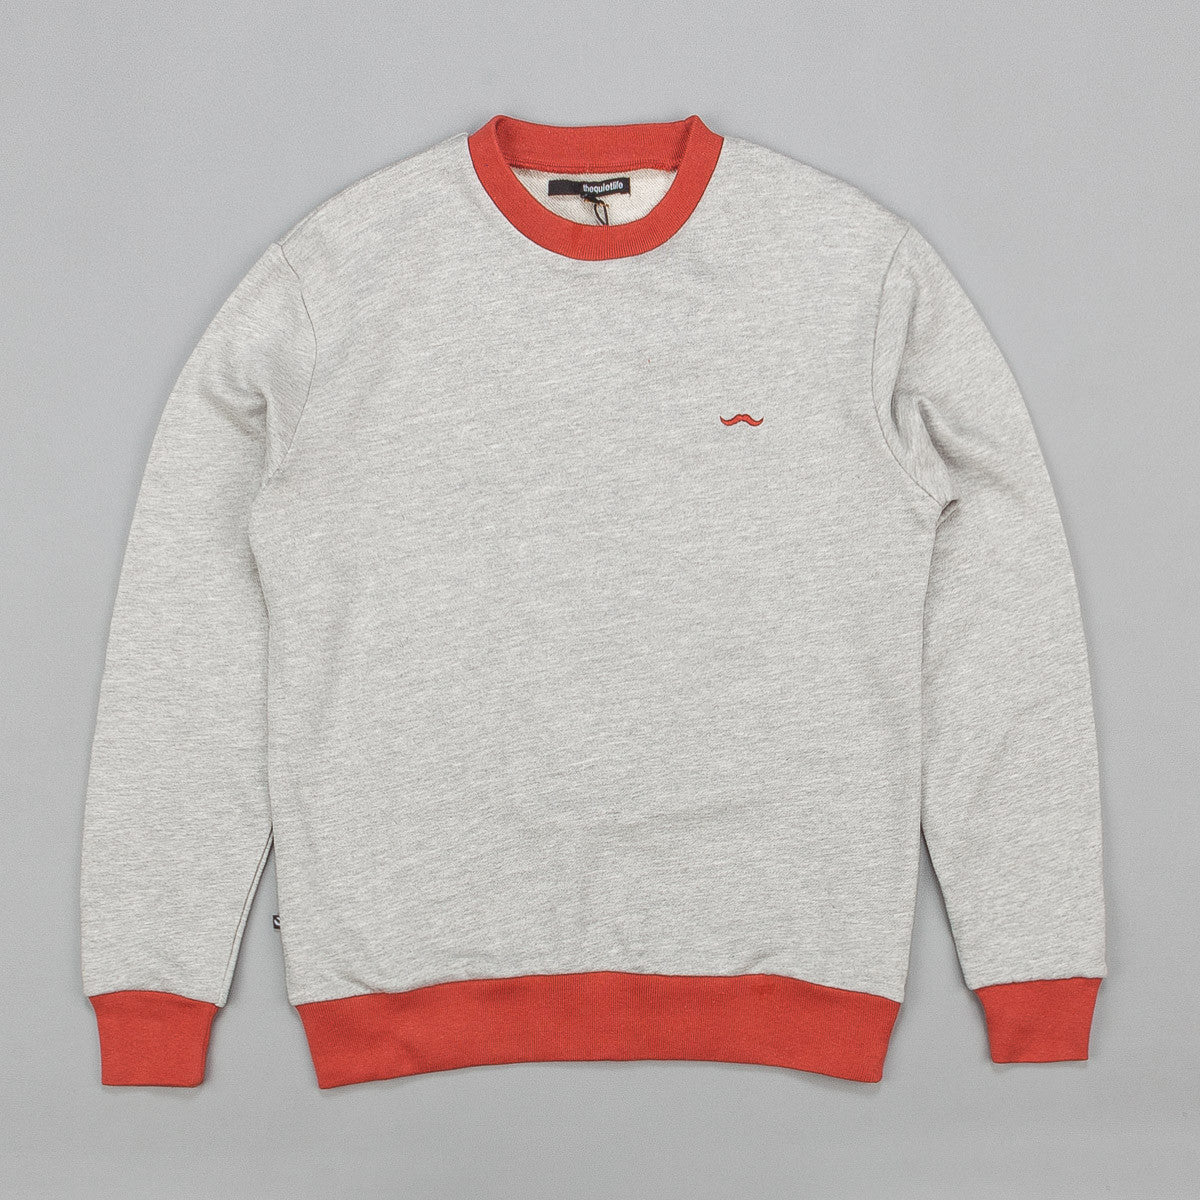 The Quiet Life Jackson Crew Neck Sweatshirt